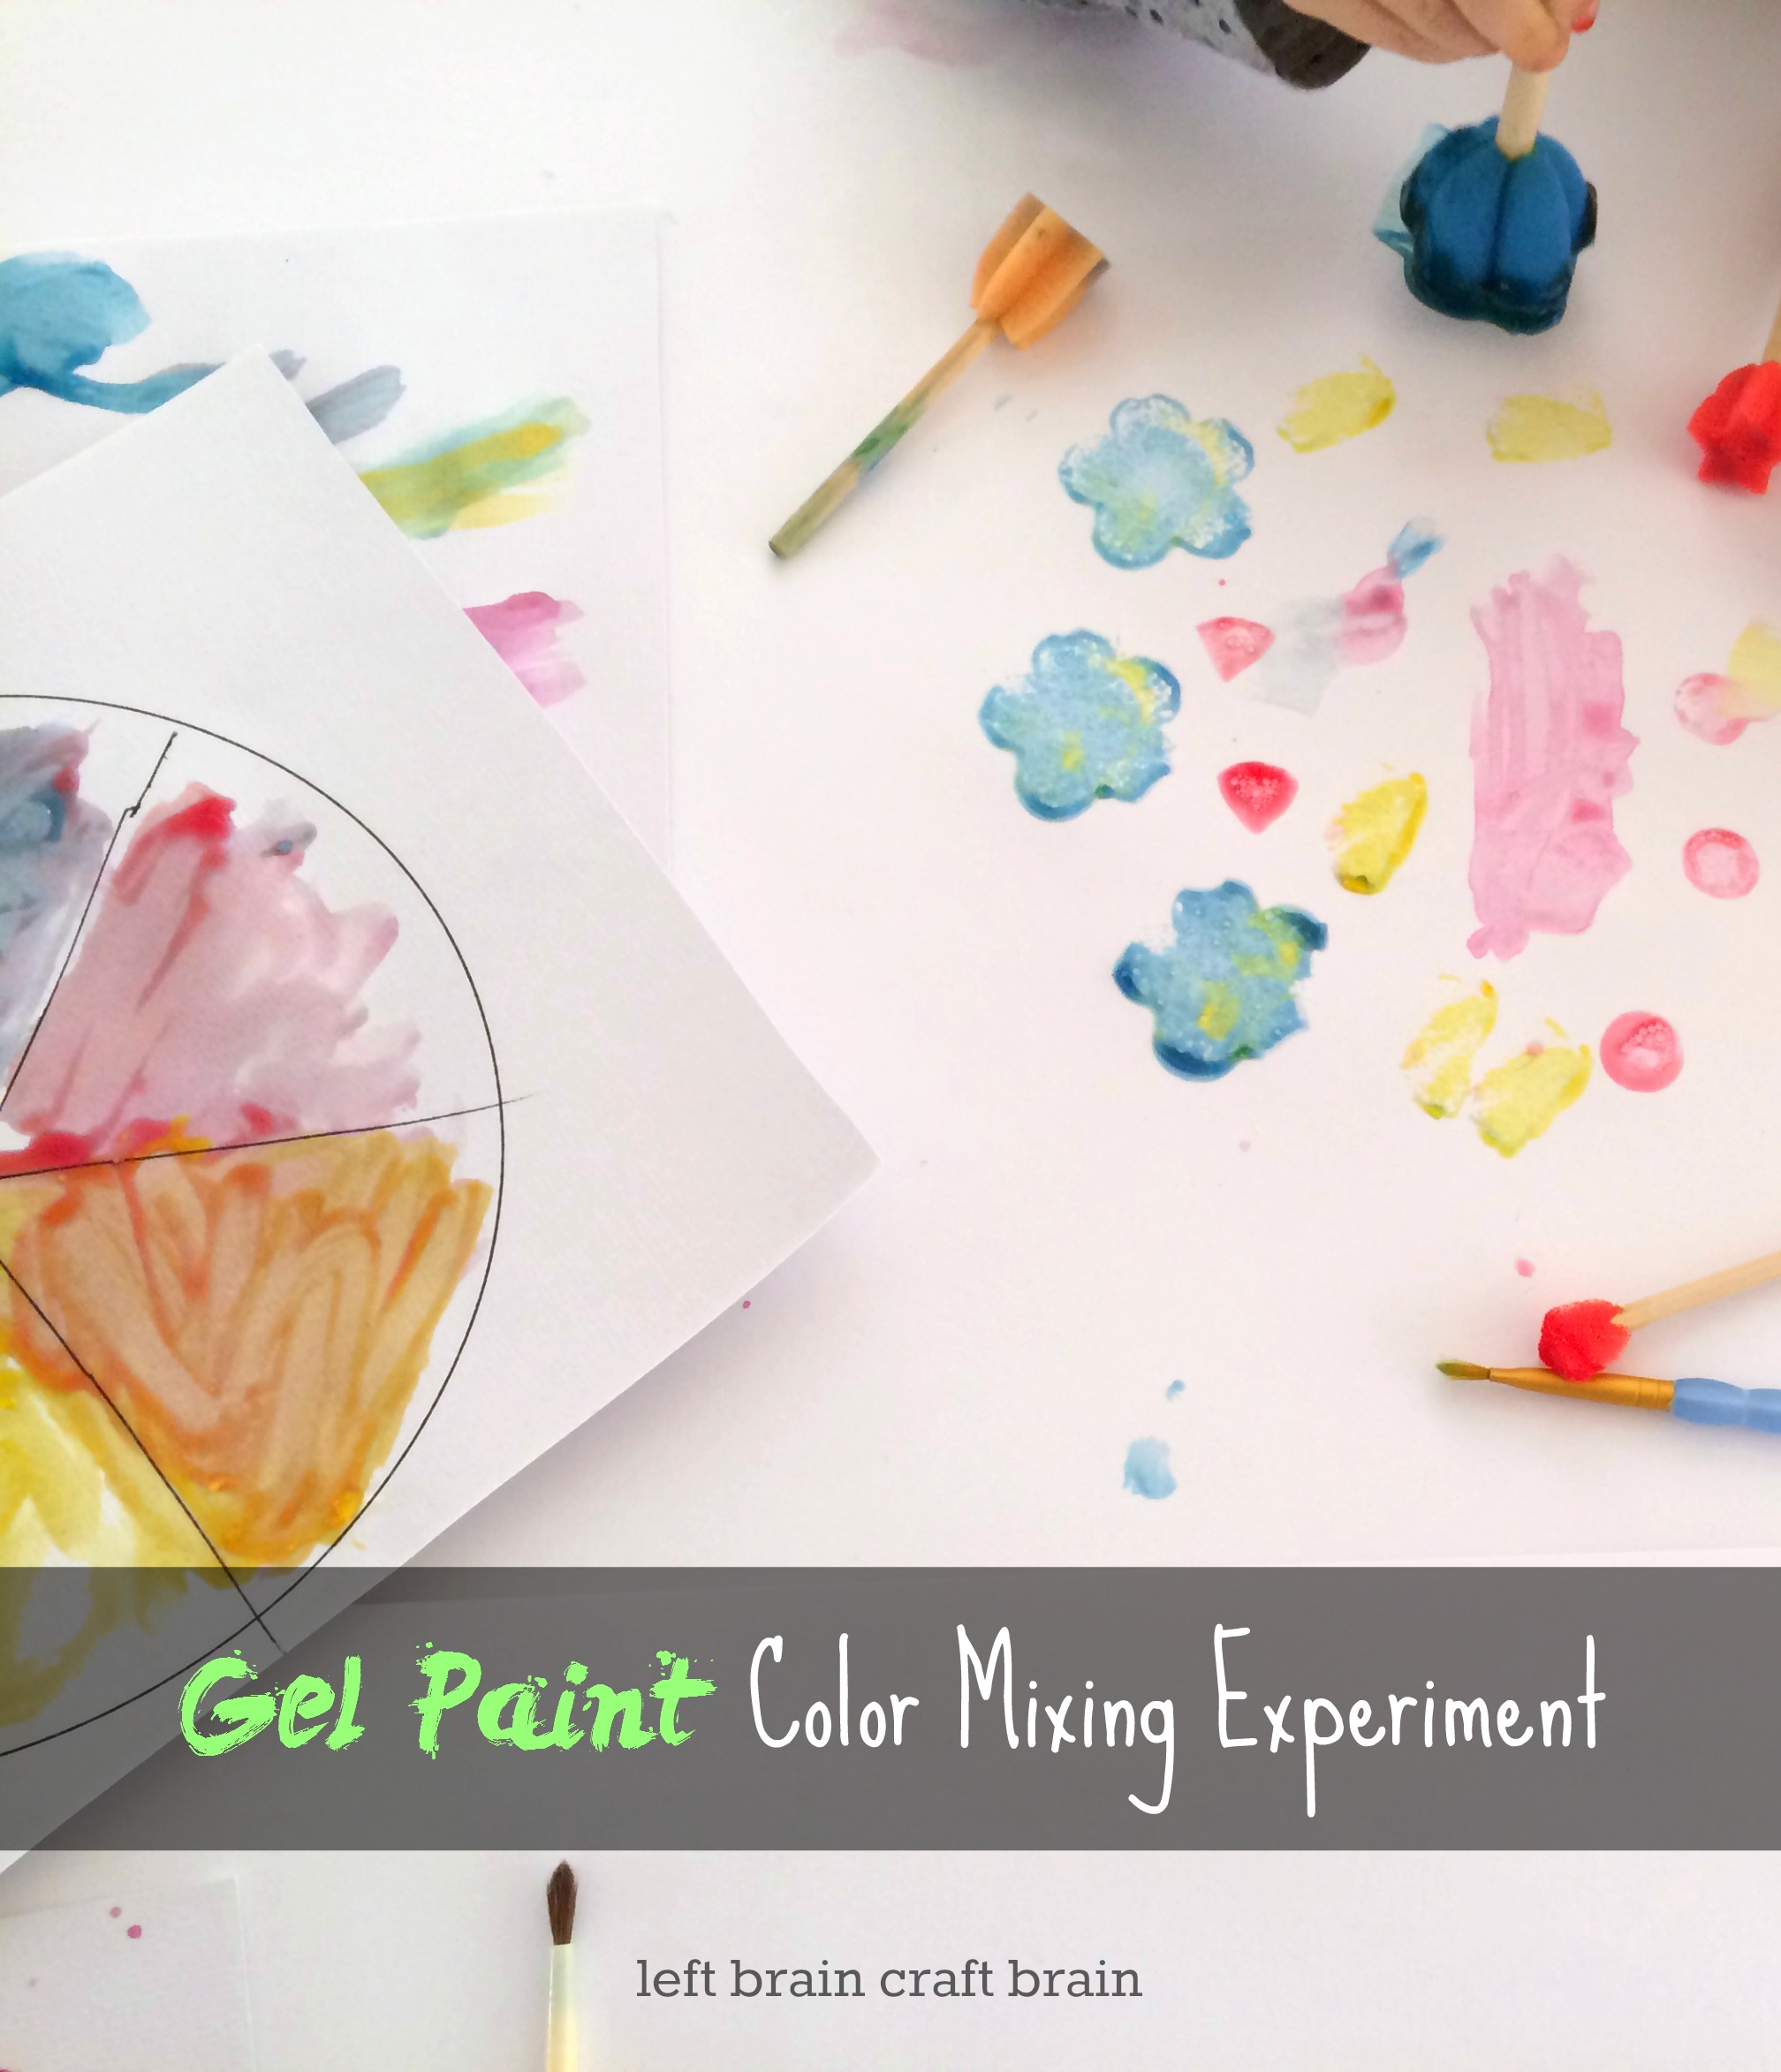 gel paint color mixing experiment left brain craft brain pinterest